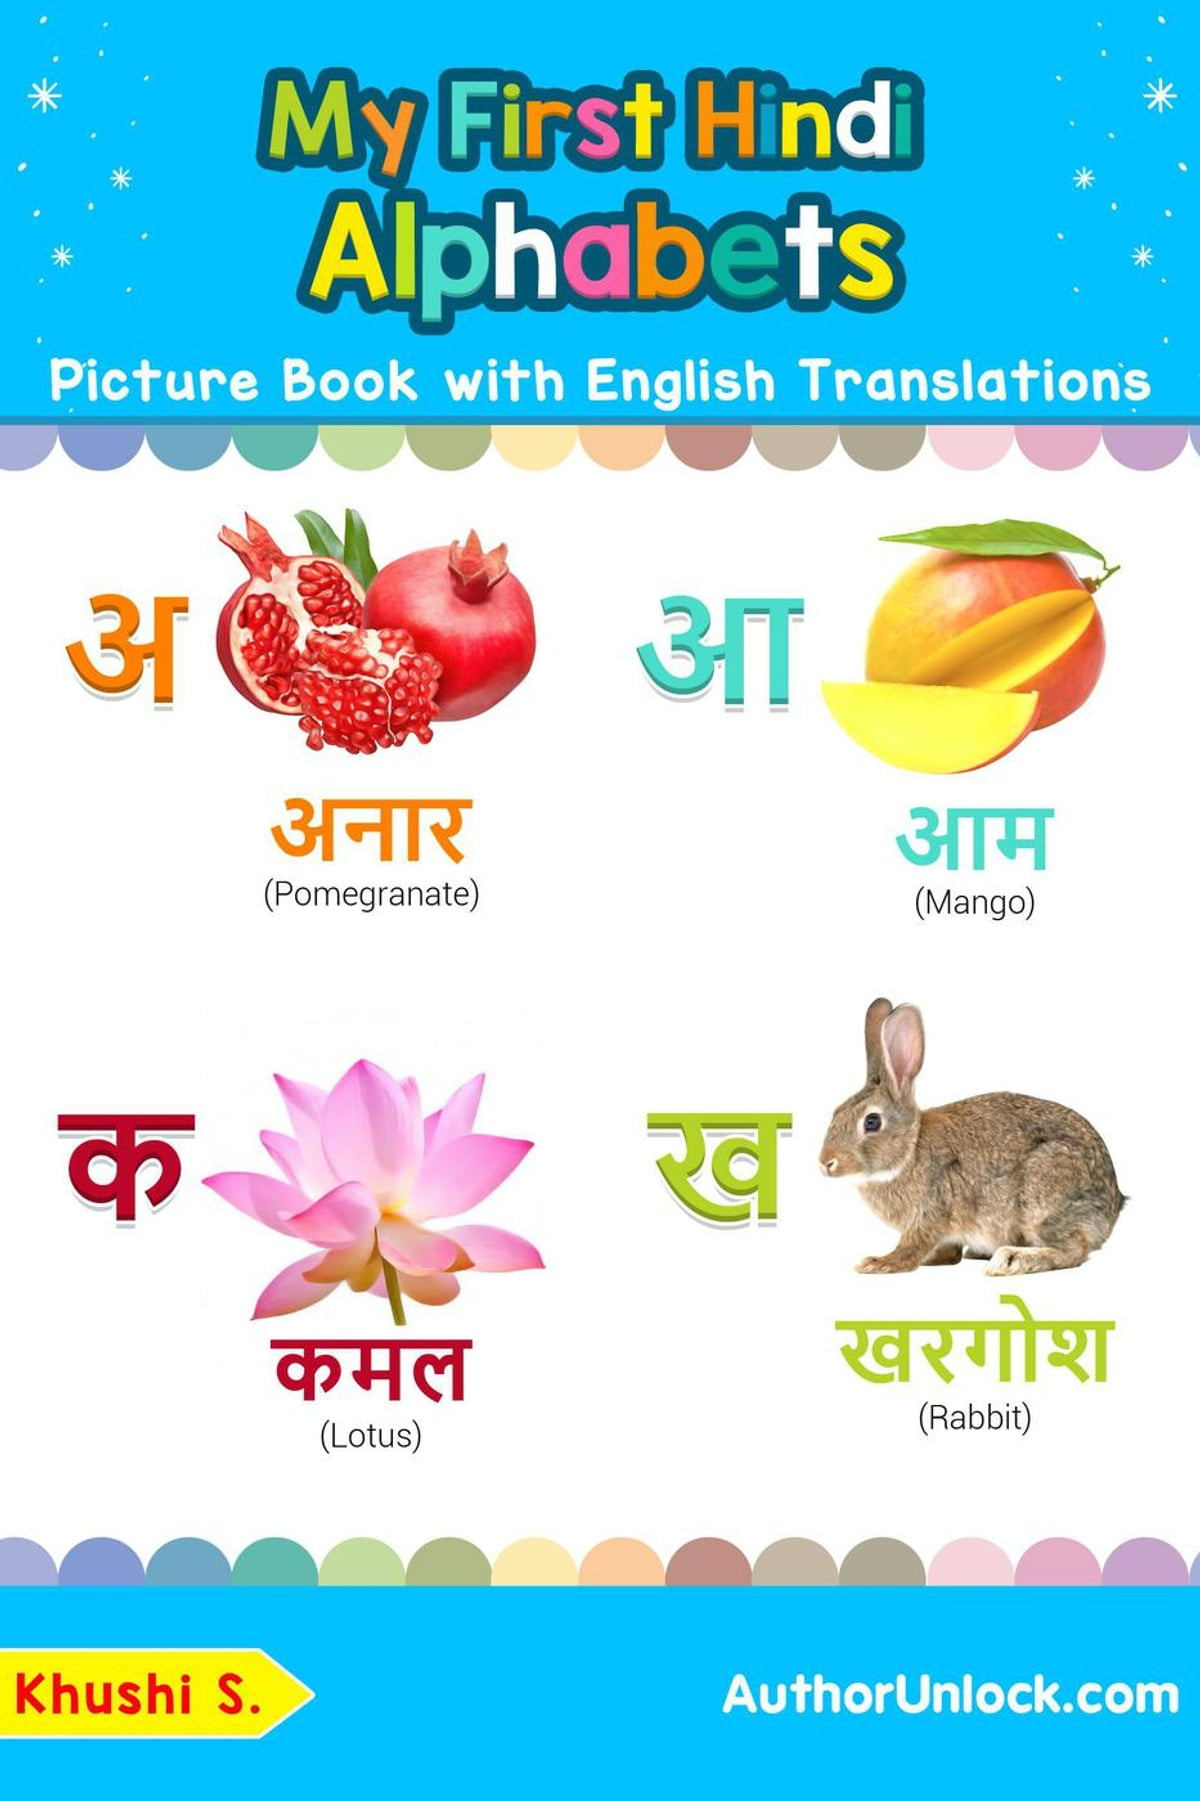 My First Hindi Alphabets Picture Book With English